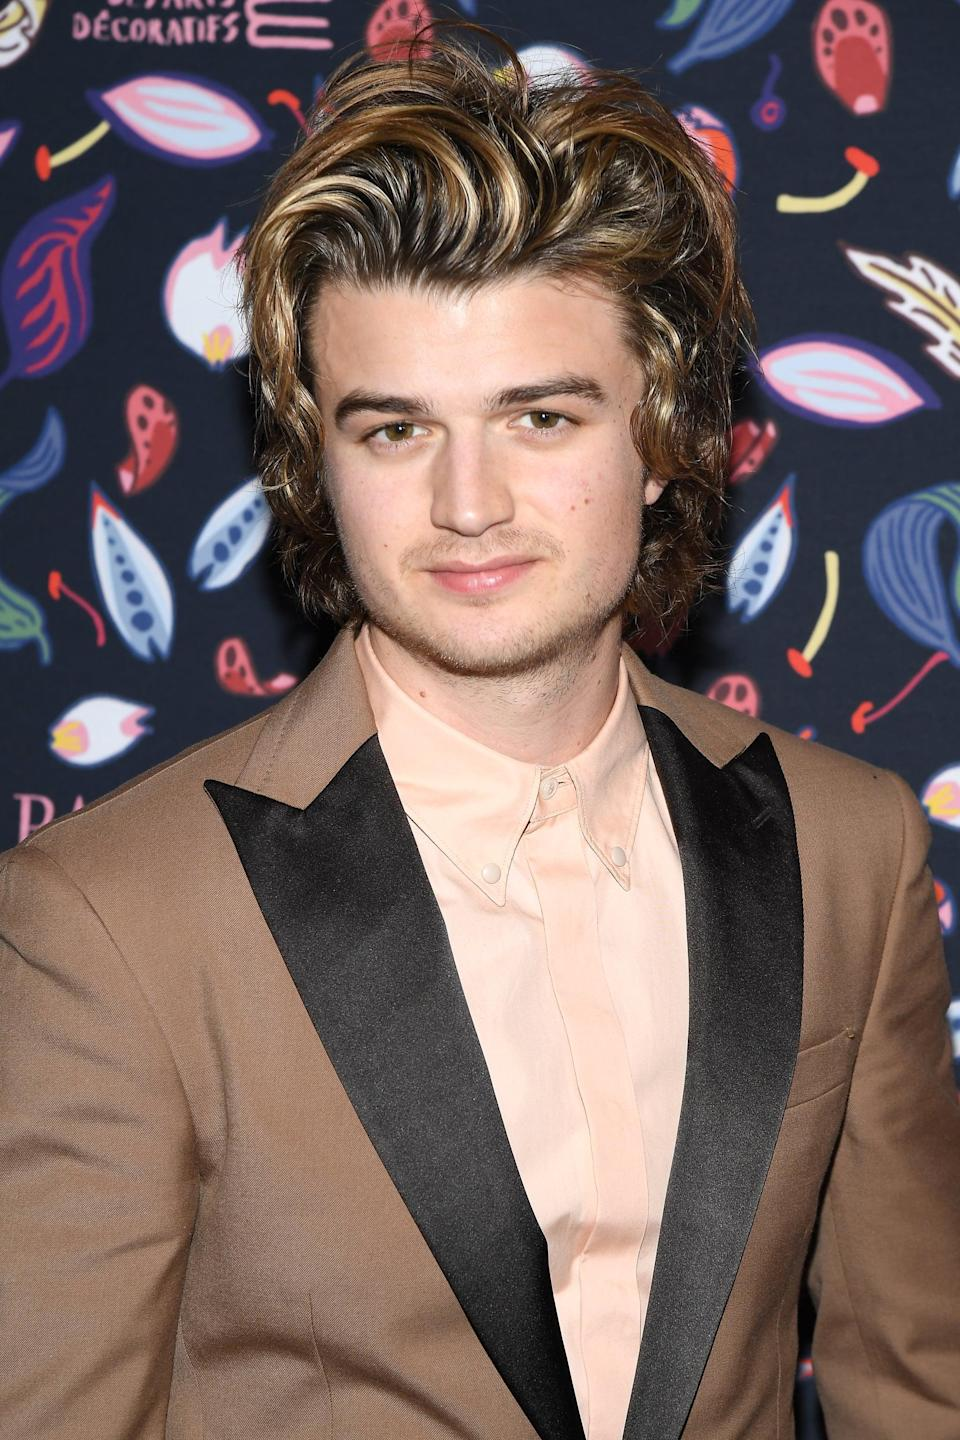 <p>Keery (and his iconic hair) will be back for a fourth season as Steve Harrington, the popular snob turned loyal protector of the Party.</p>